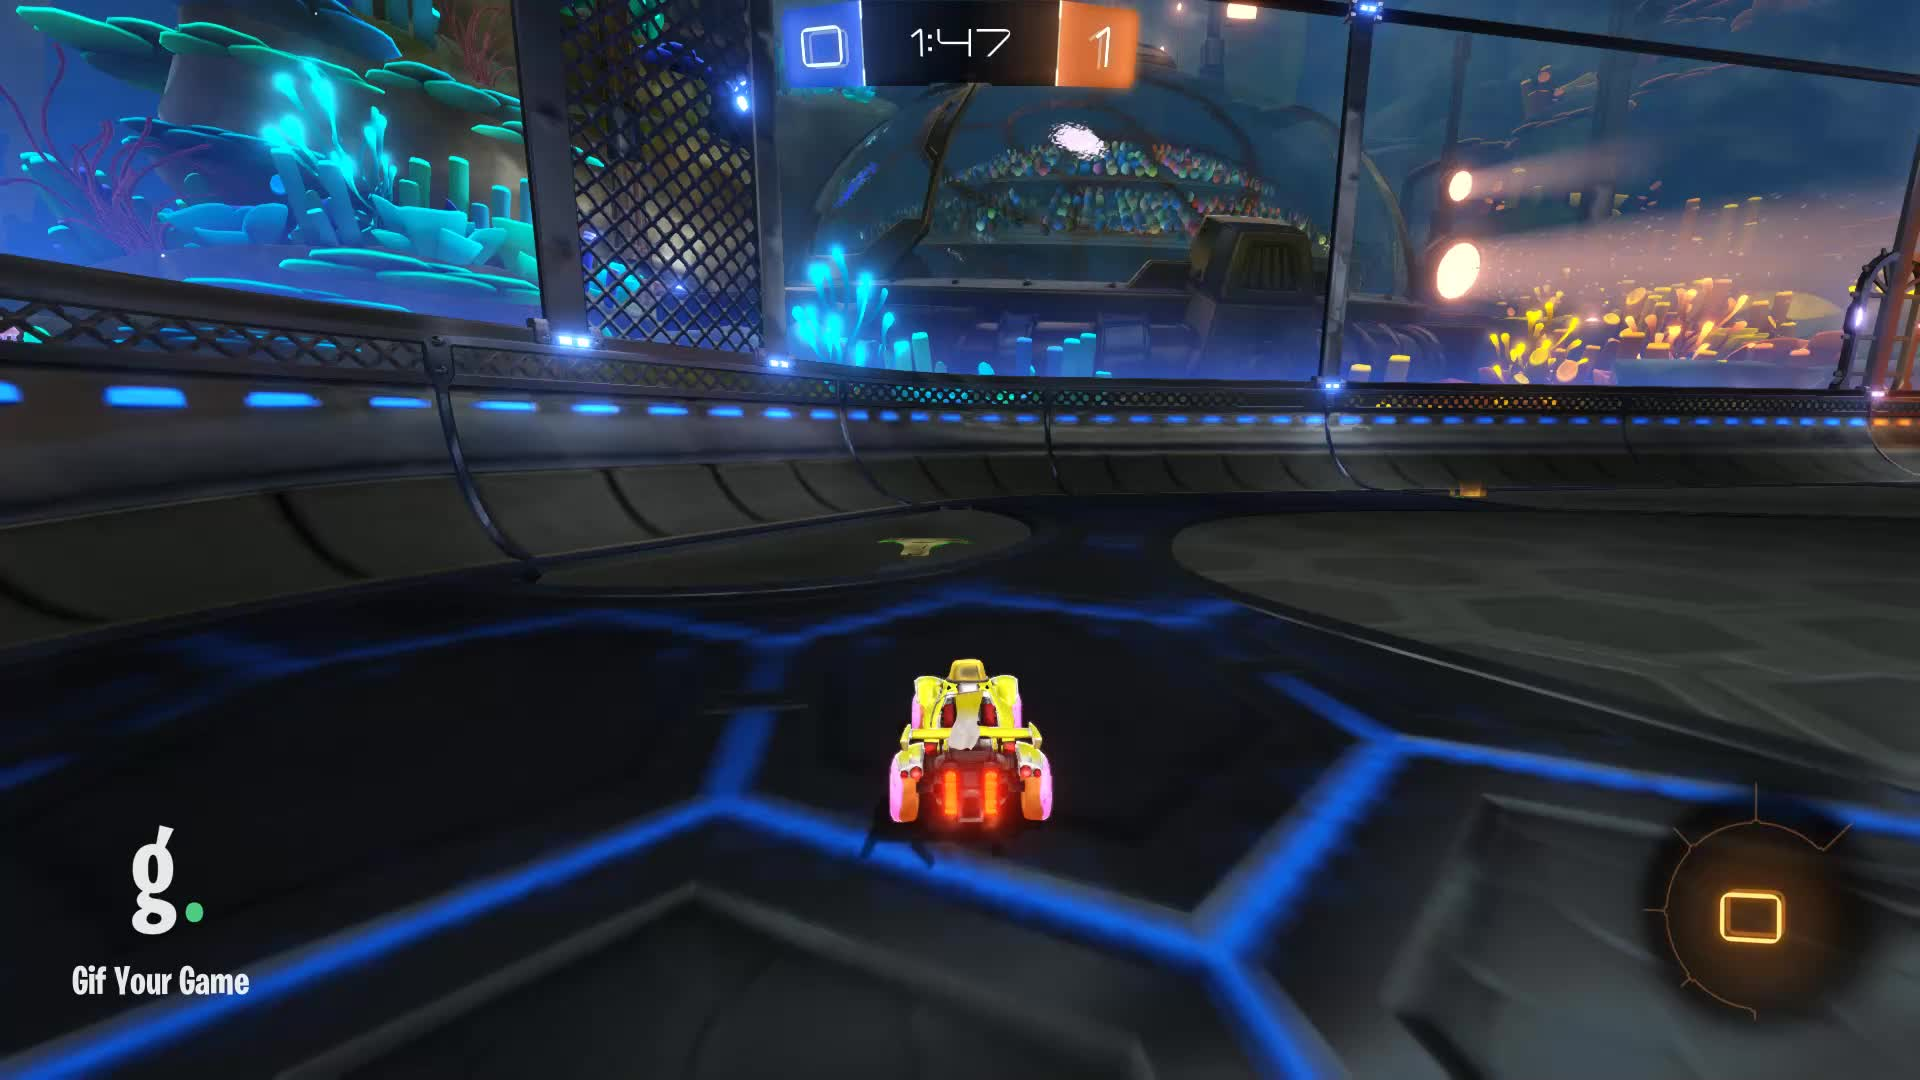 Drunk, Sorry!, Gif Your Game, GifYourGame, Rocket League, RocketLeague, Shot 7: Inspector Norse GIFs